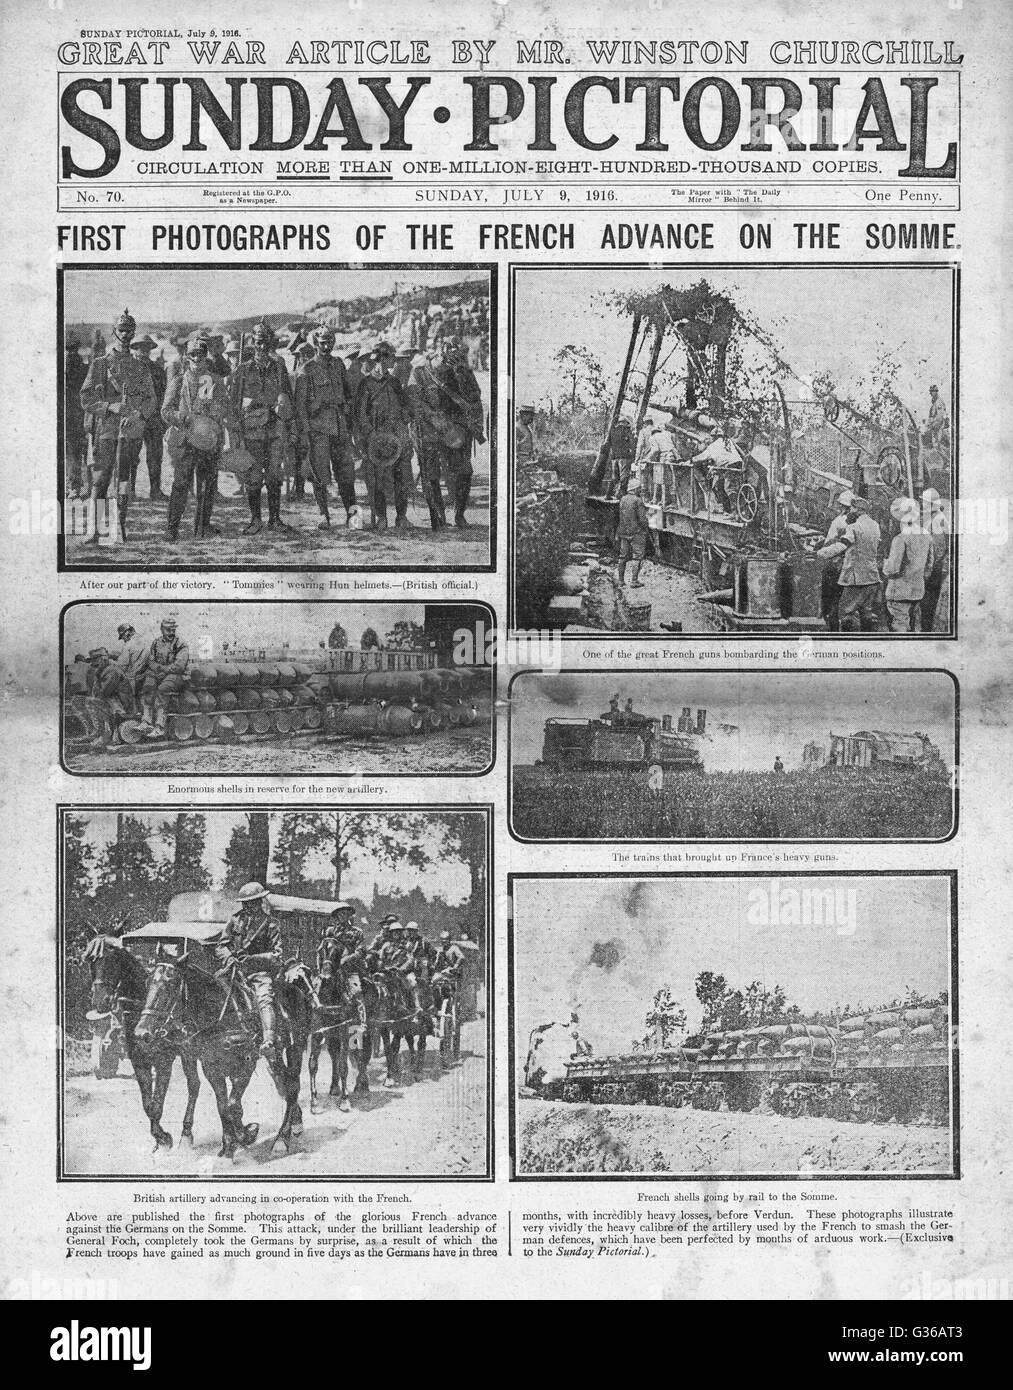 1916 Sunday Pictorial front page French troops advance on the Somme - Stock Image